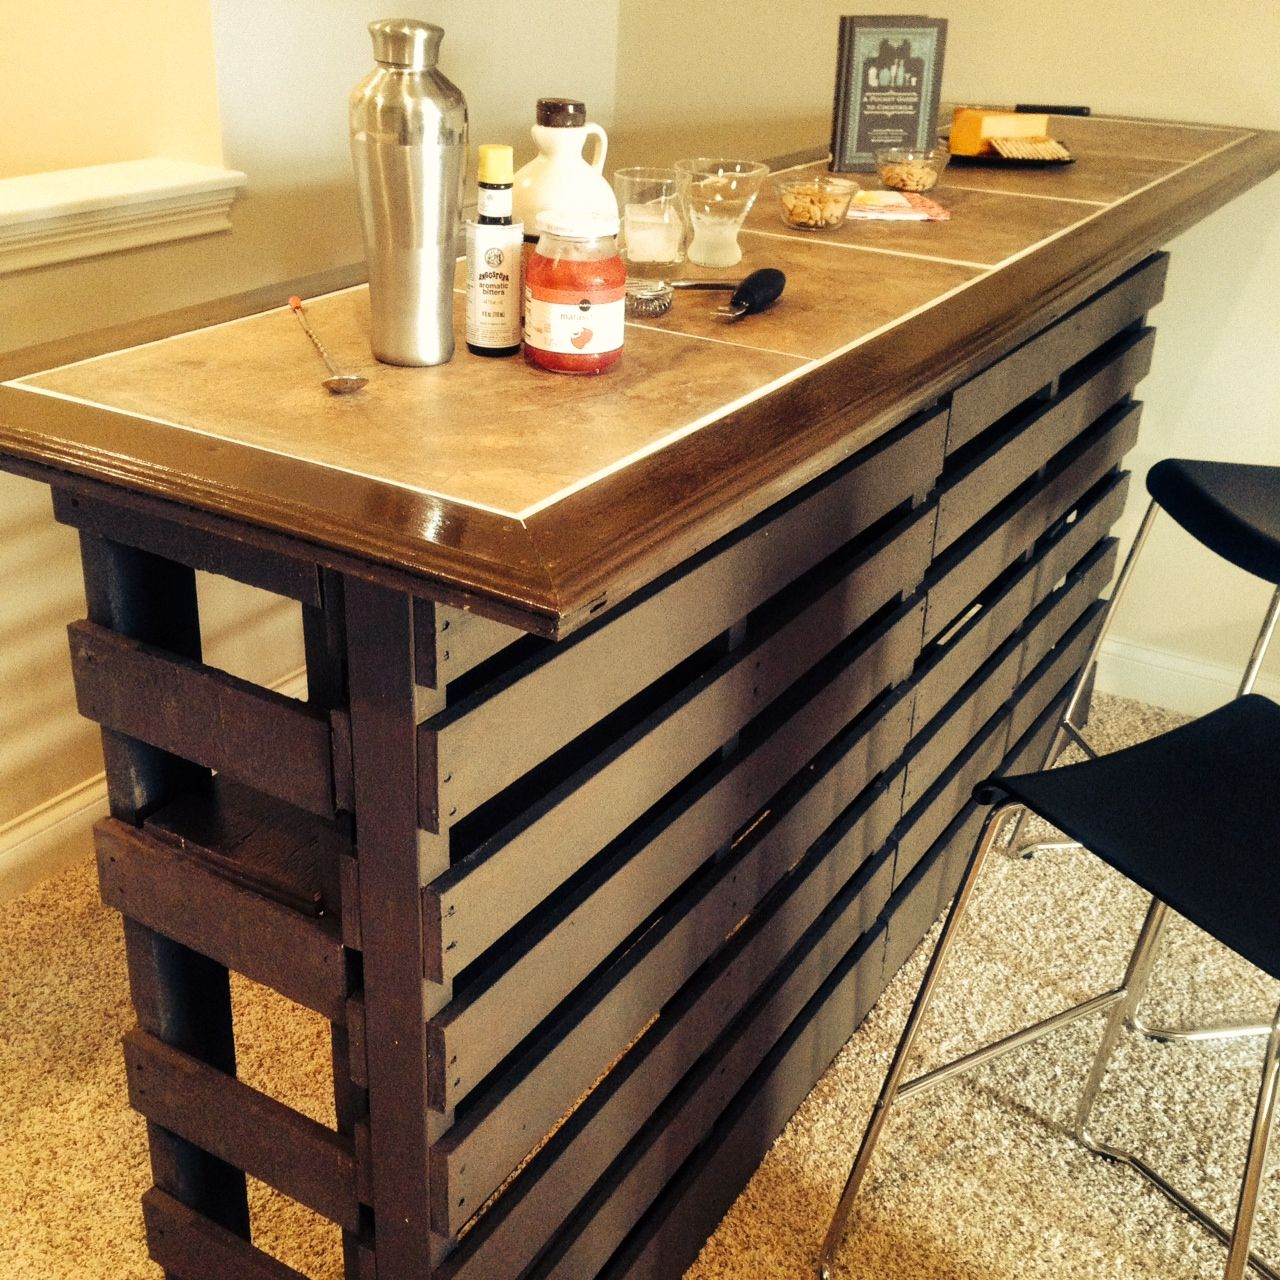 How I Built A DIY Indoor Bar With Discarded Pallets for $140 | DIY ...